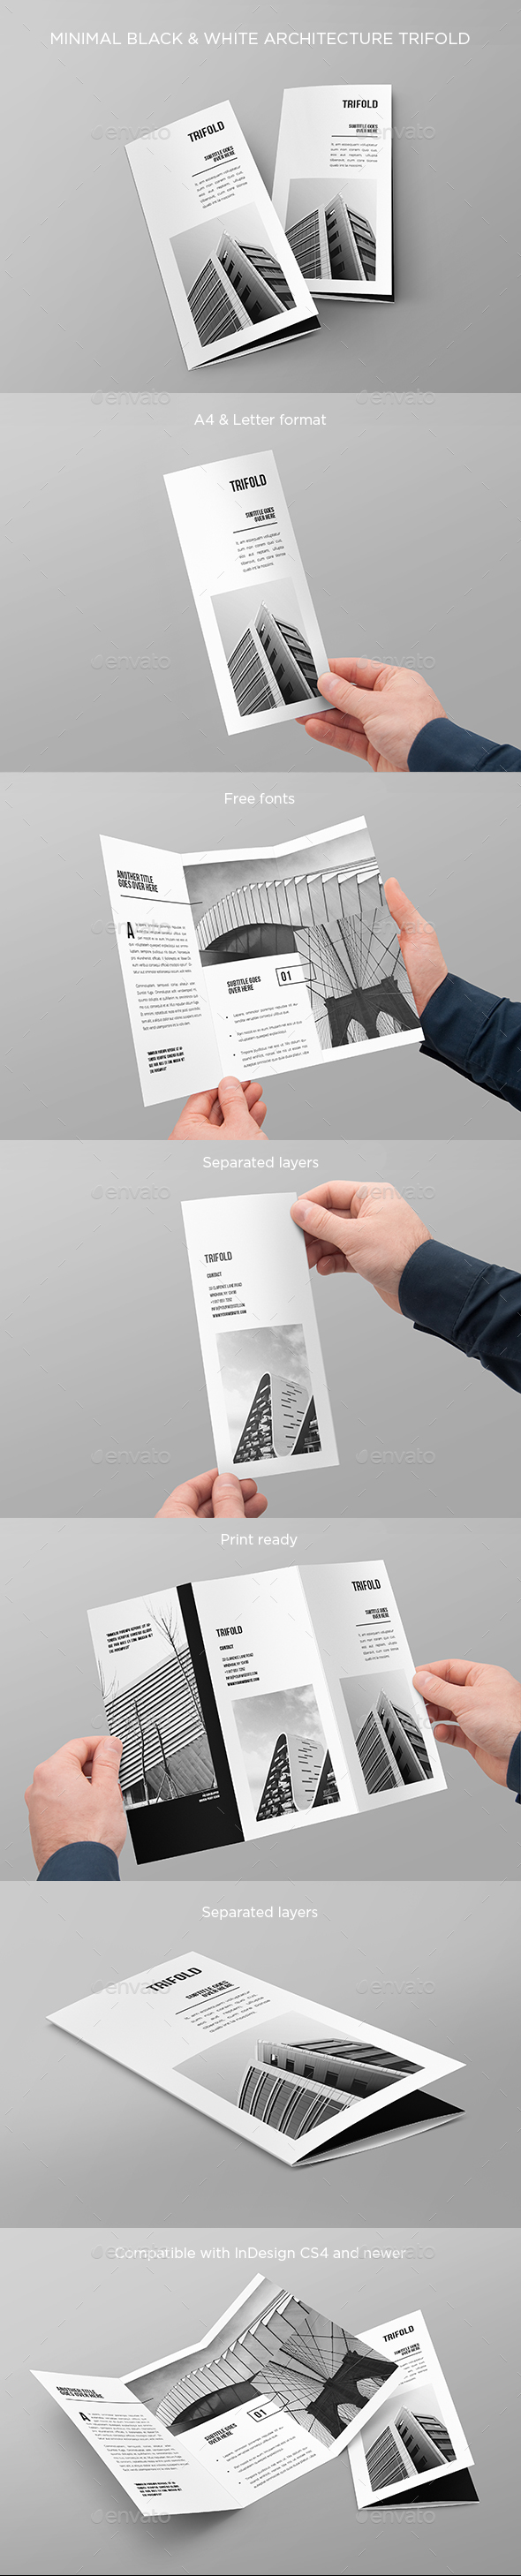 Minimal Black & White Architecture Trifold - Brochures Print Templates